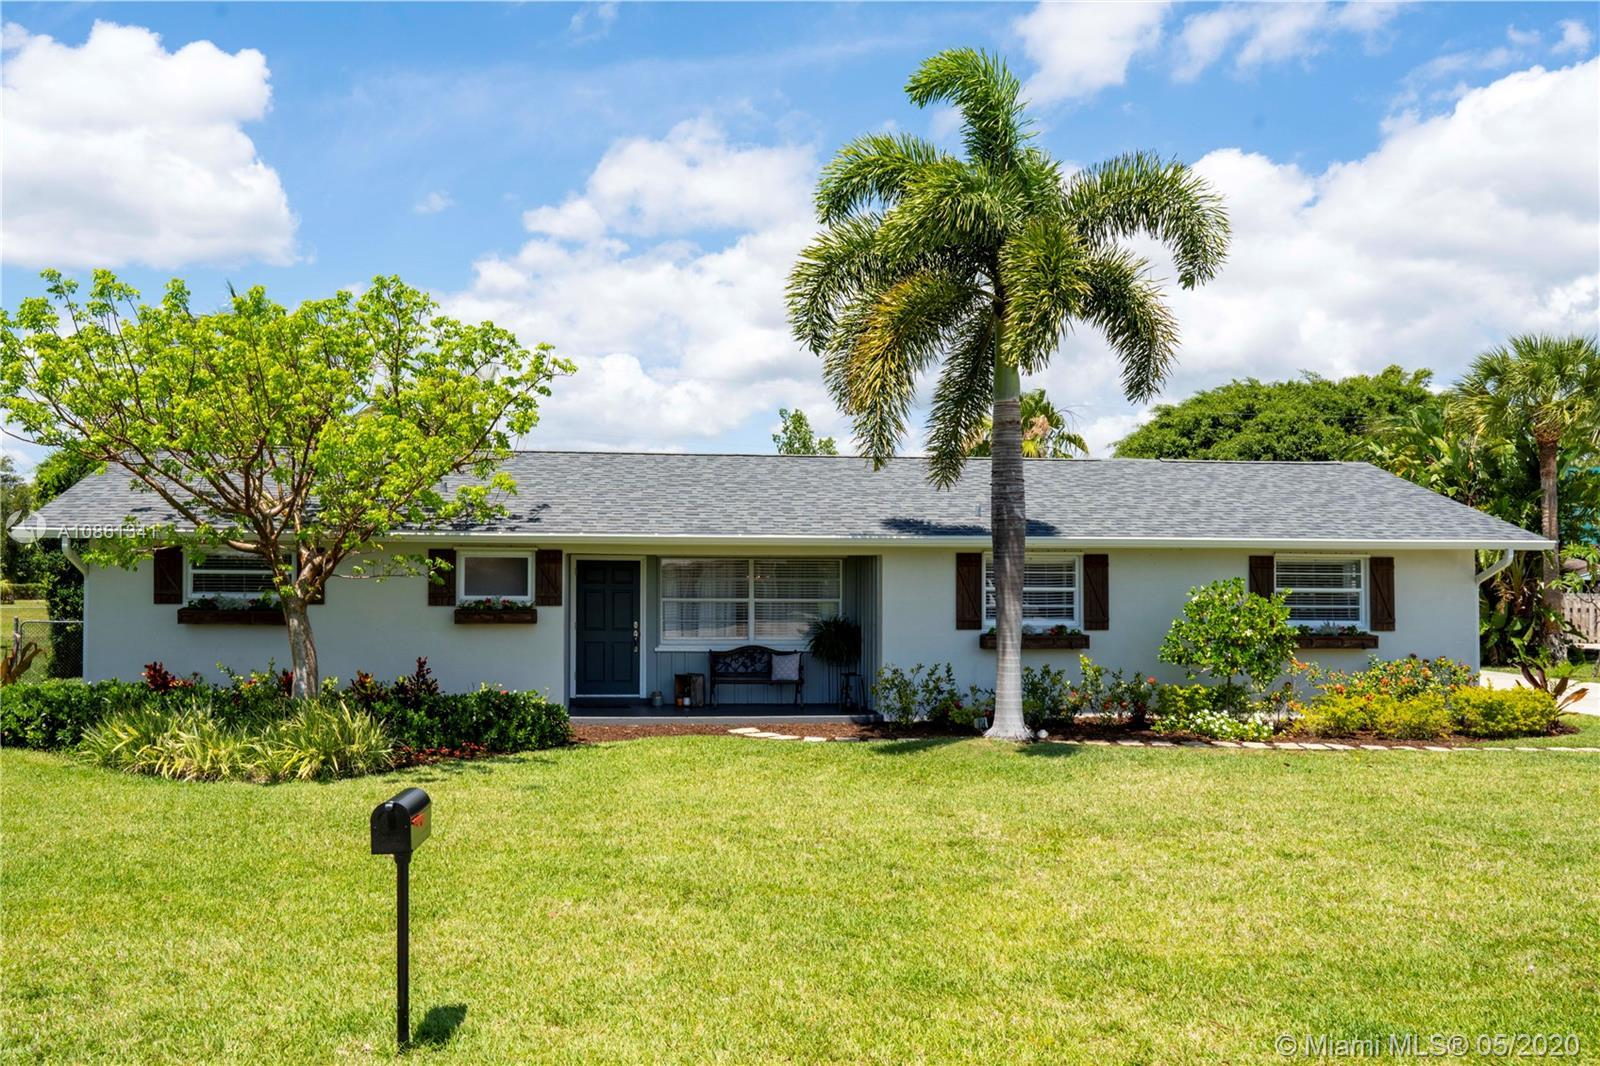 Beautifully remodeled home in great family neighborhood. Surrounded by waterfront homes. Walk to Jup